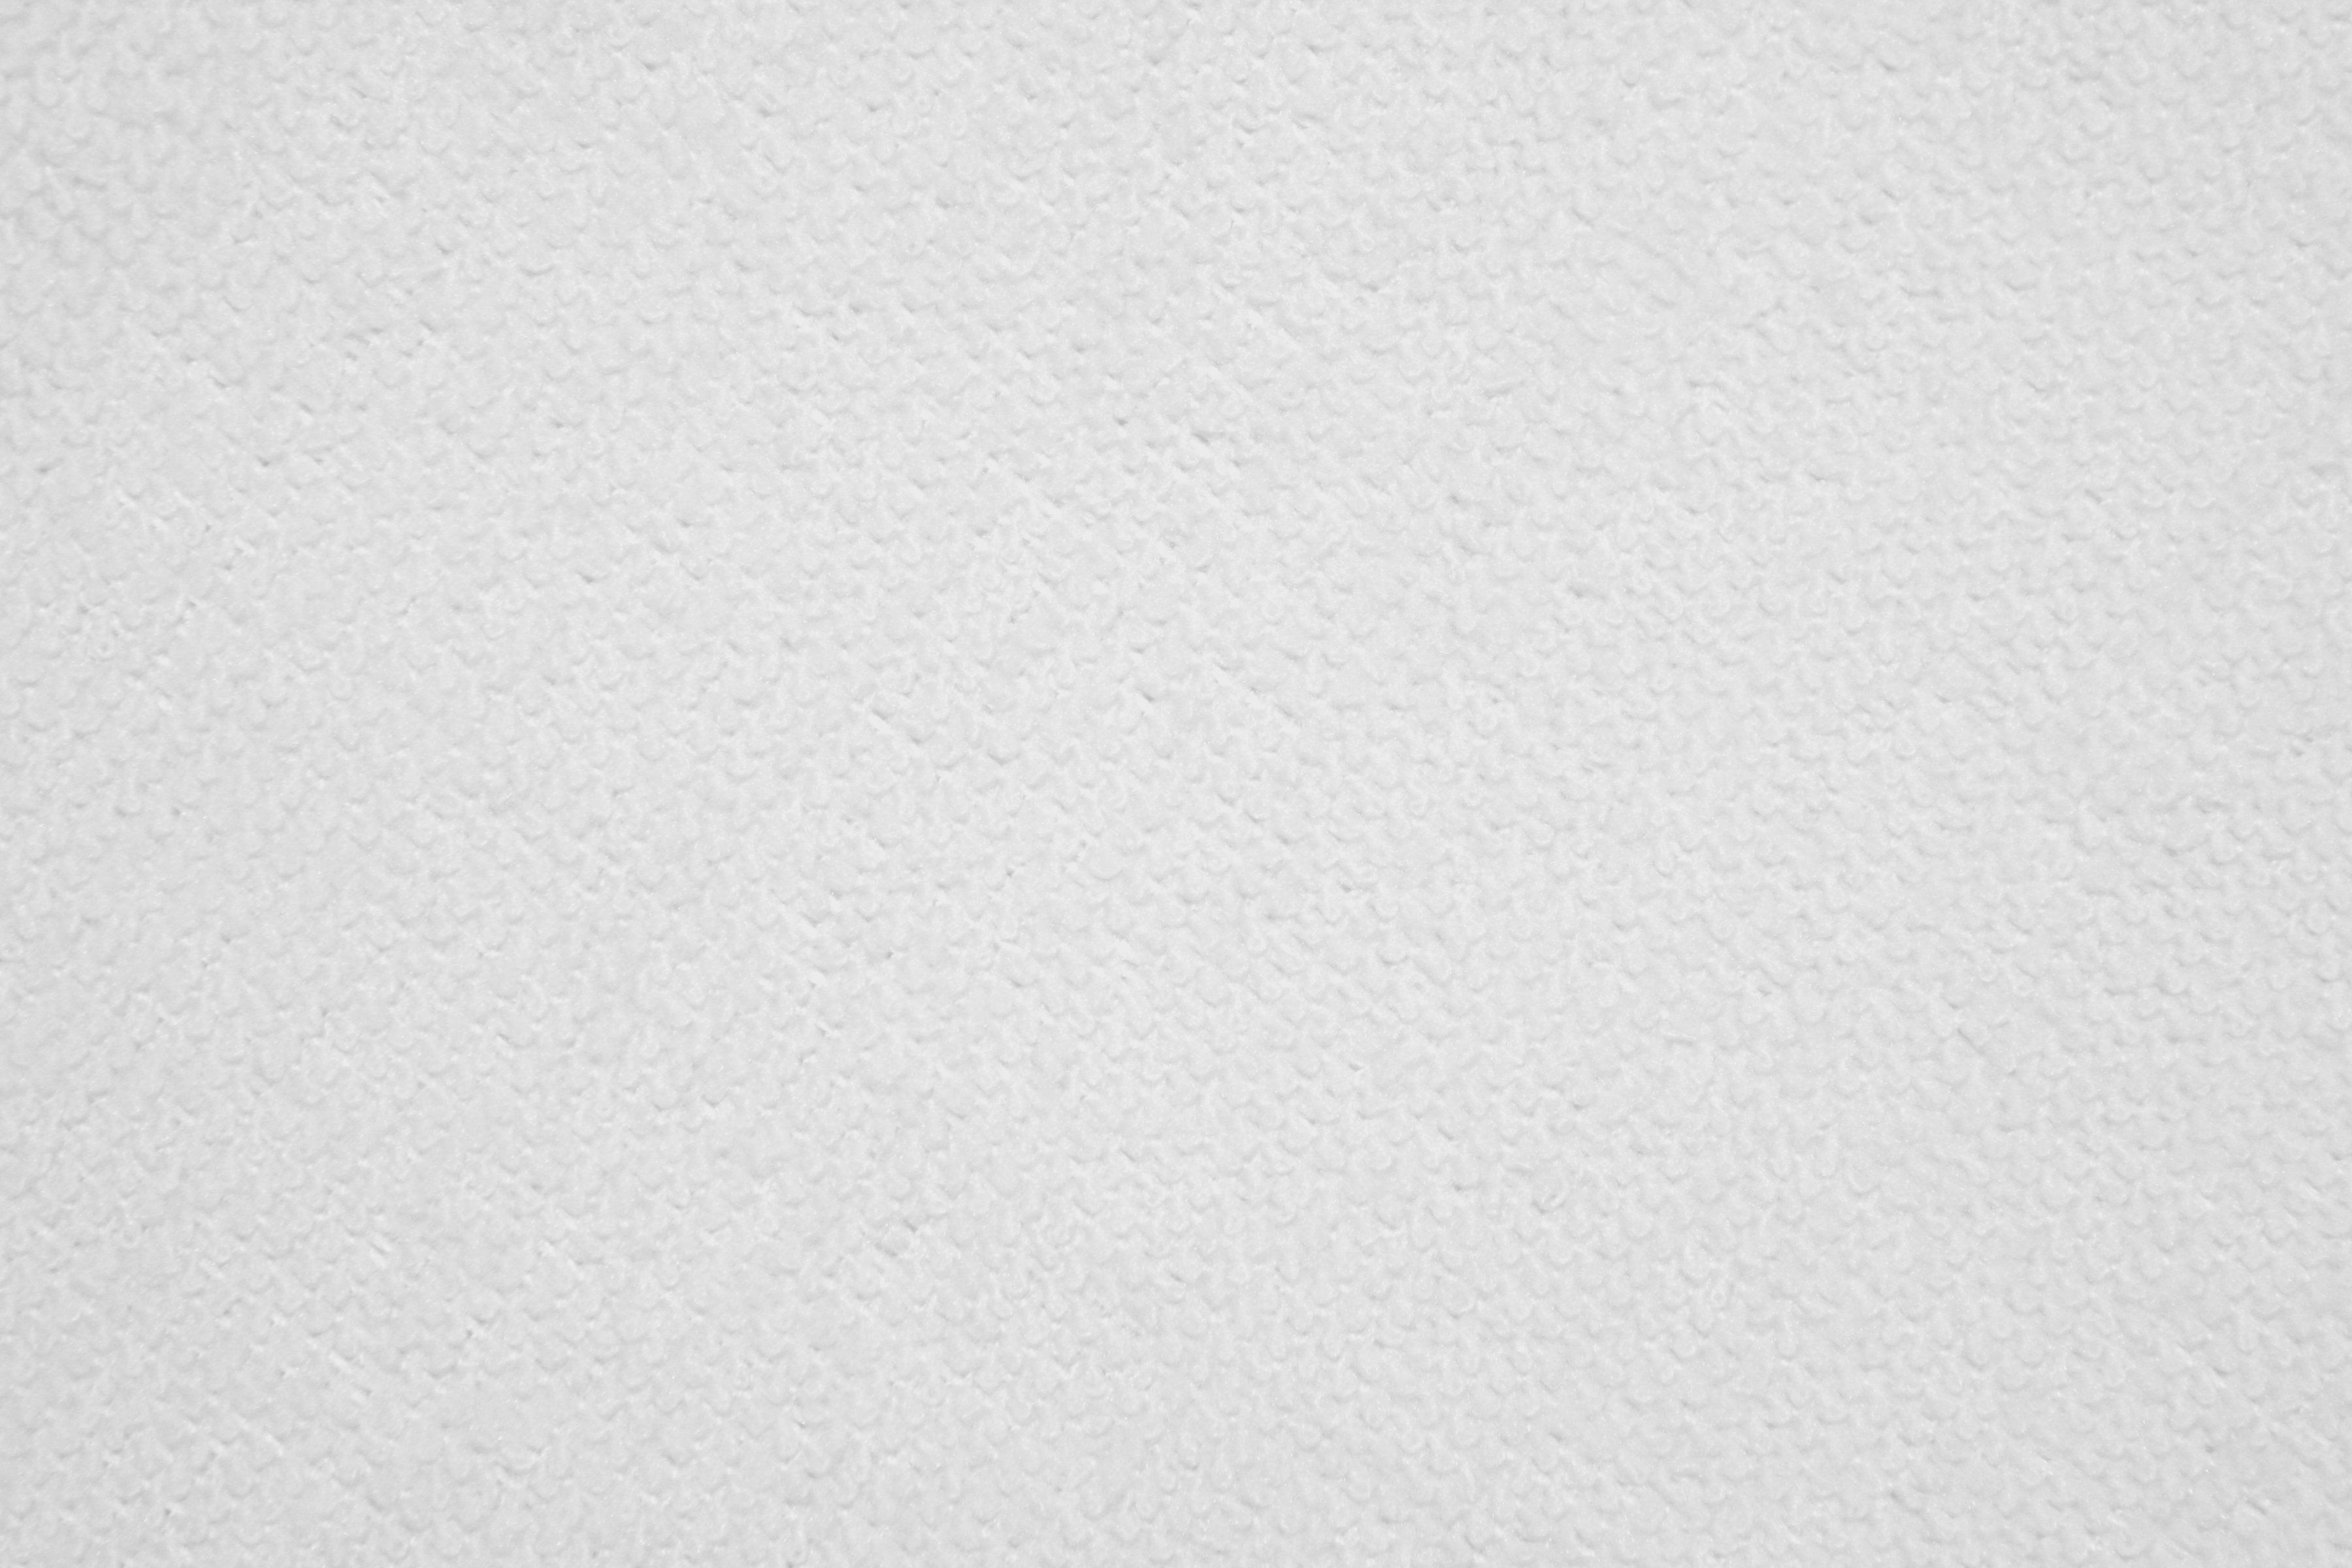 Free Fabric Textures | White Microfiber Cloth Fabric Texture ...